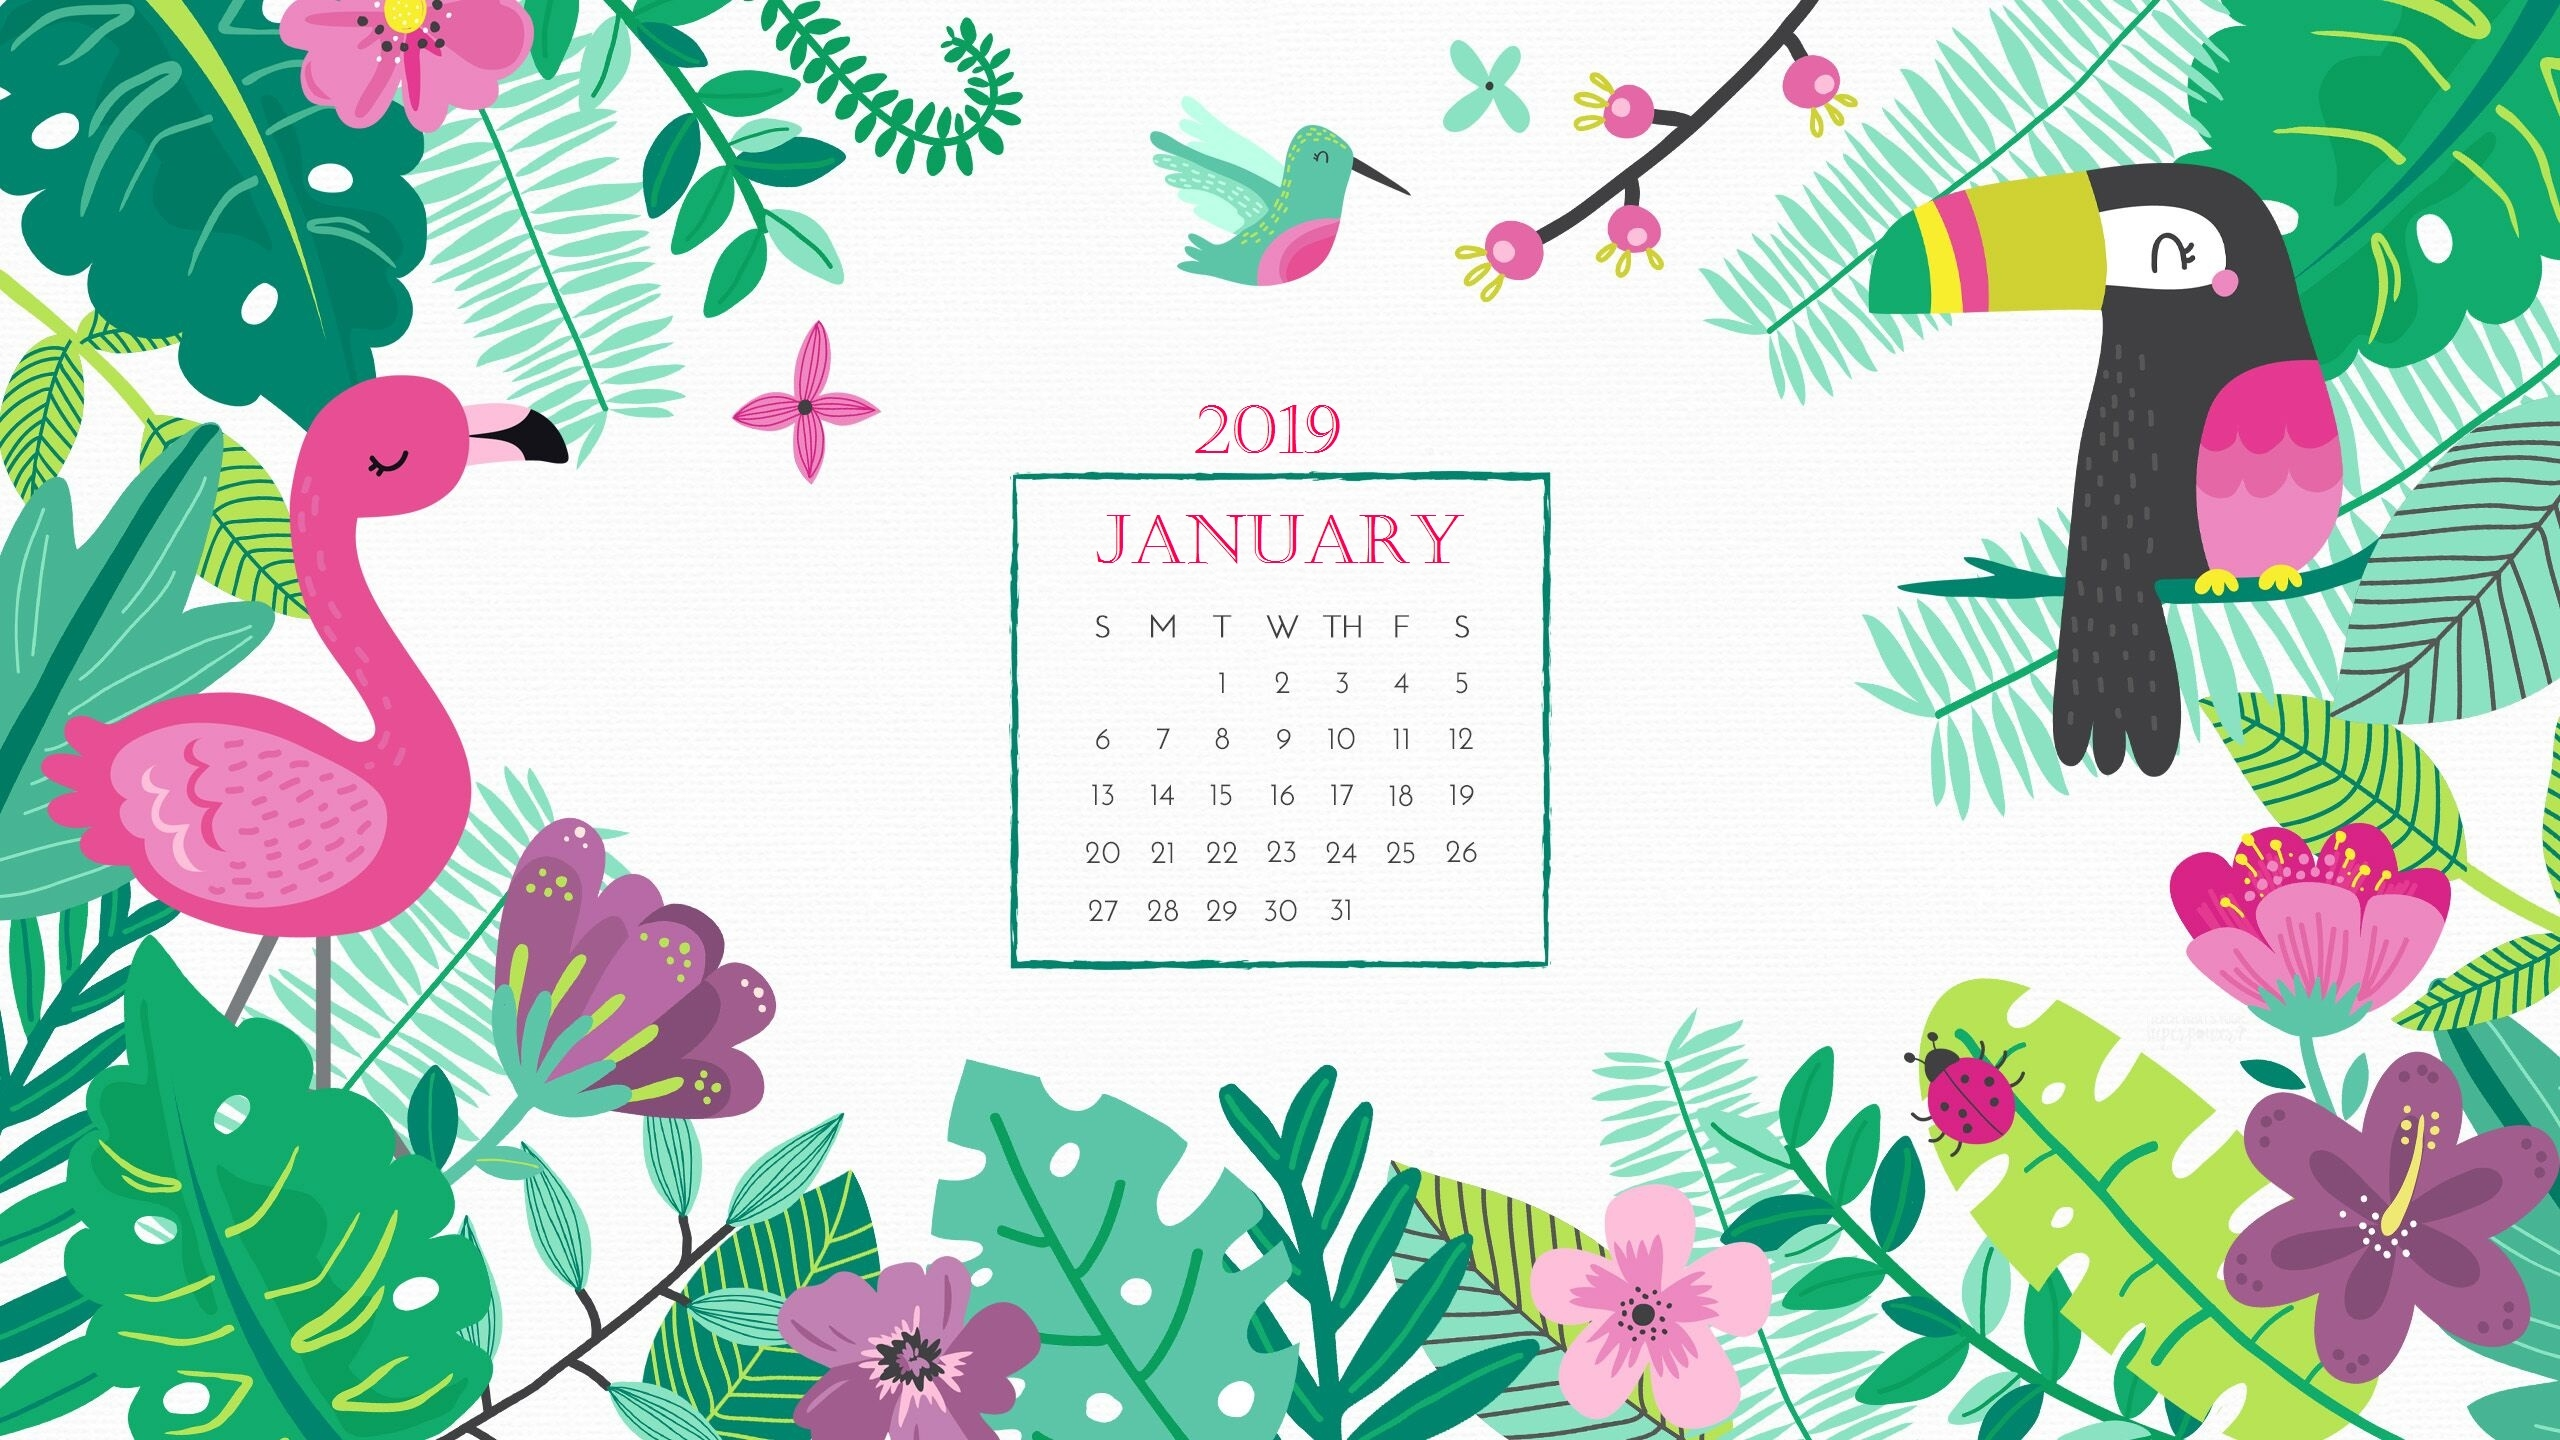 january 2019 calendar wallpaper calendar 2018::January 2019 Desktop Calendar Wallpaper